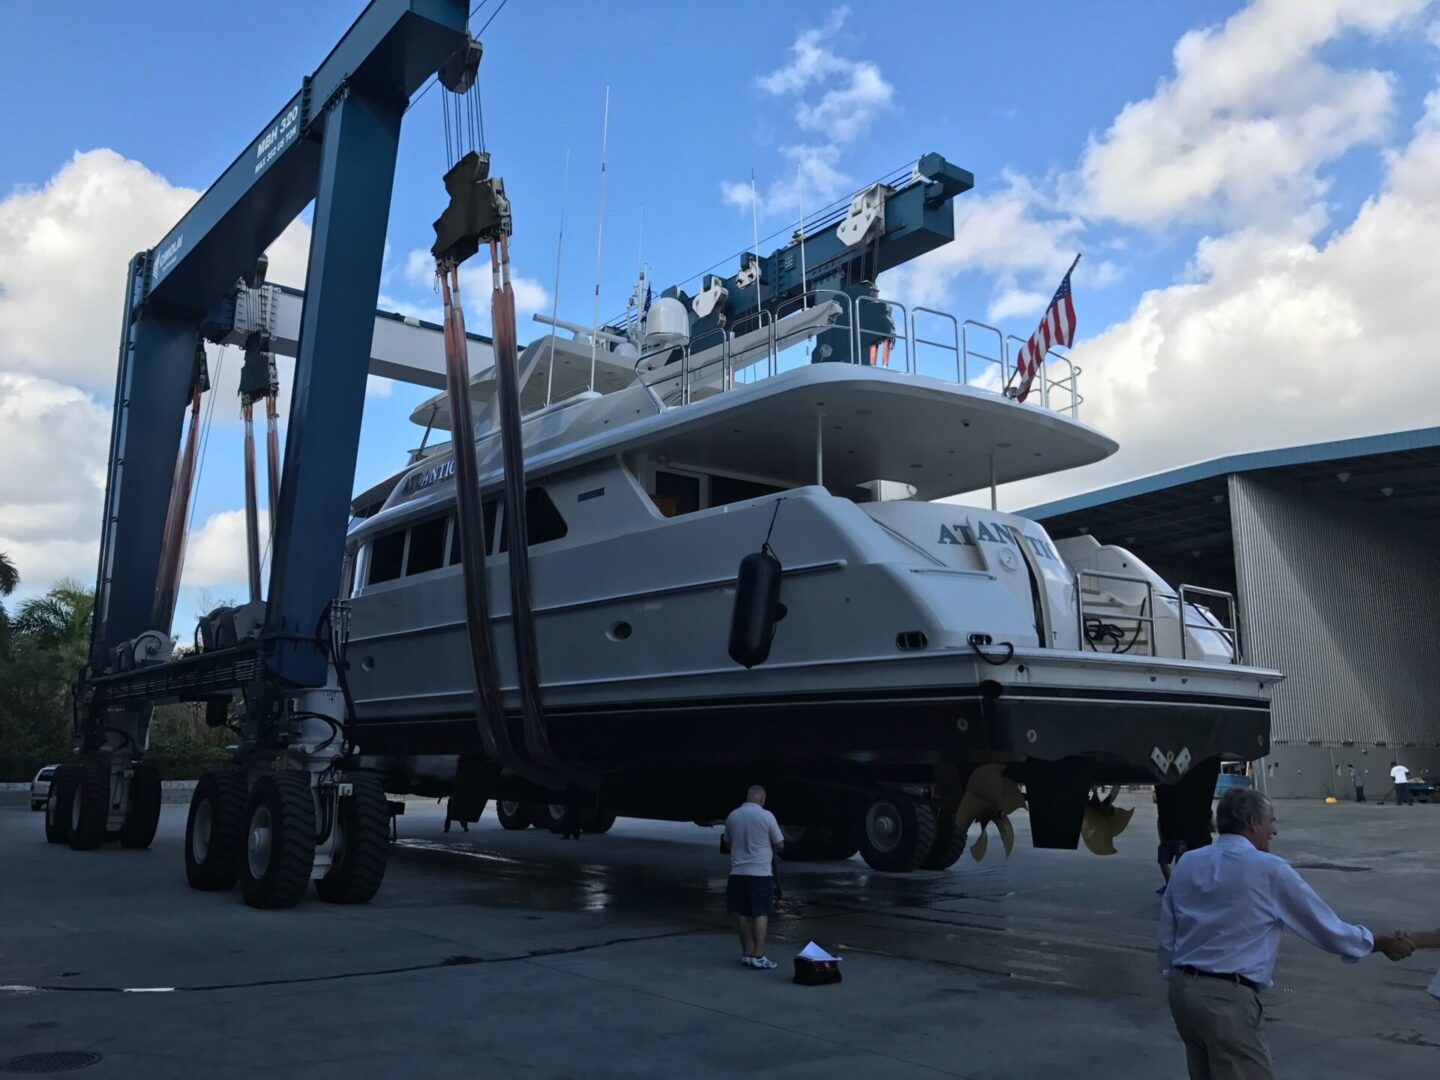 An Atlantic yacht being transported